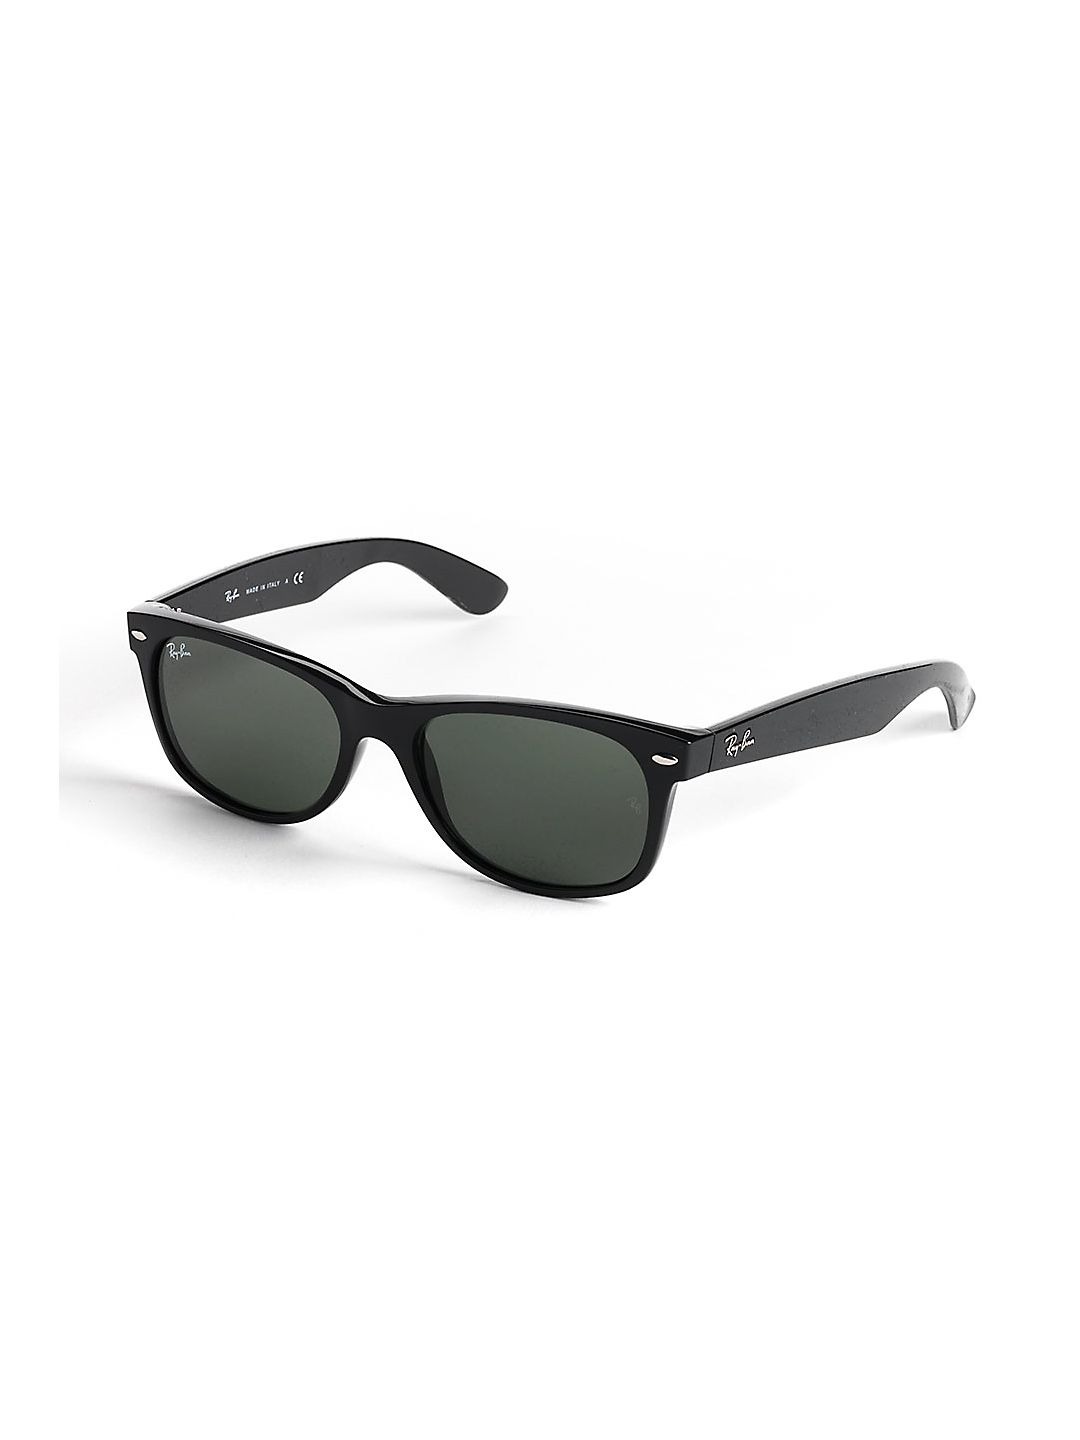 Ray-Ban Unisex RB2132 New Wayfarer Sunglasses, 55mm